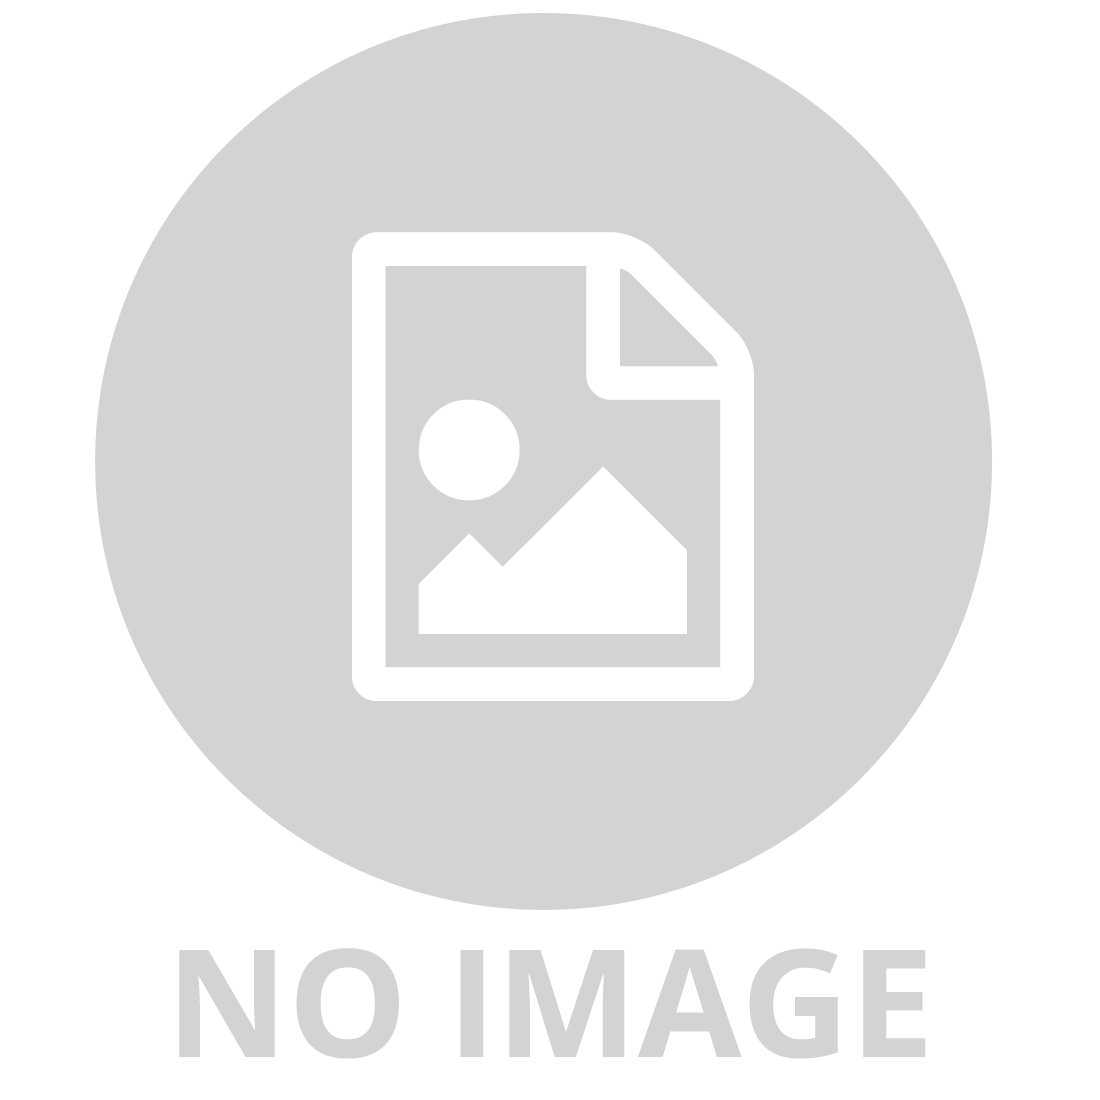 4 IN 1 WOODEN CONSTRUCTION AND ACTIVITY TABLE